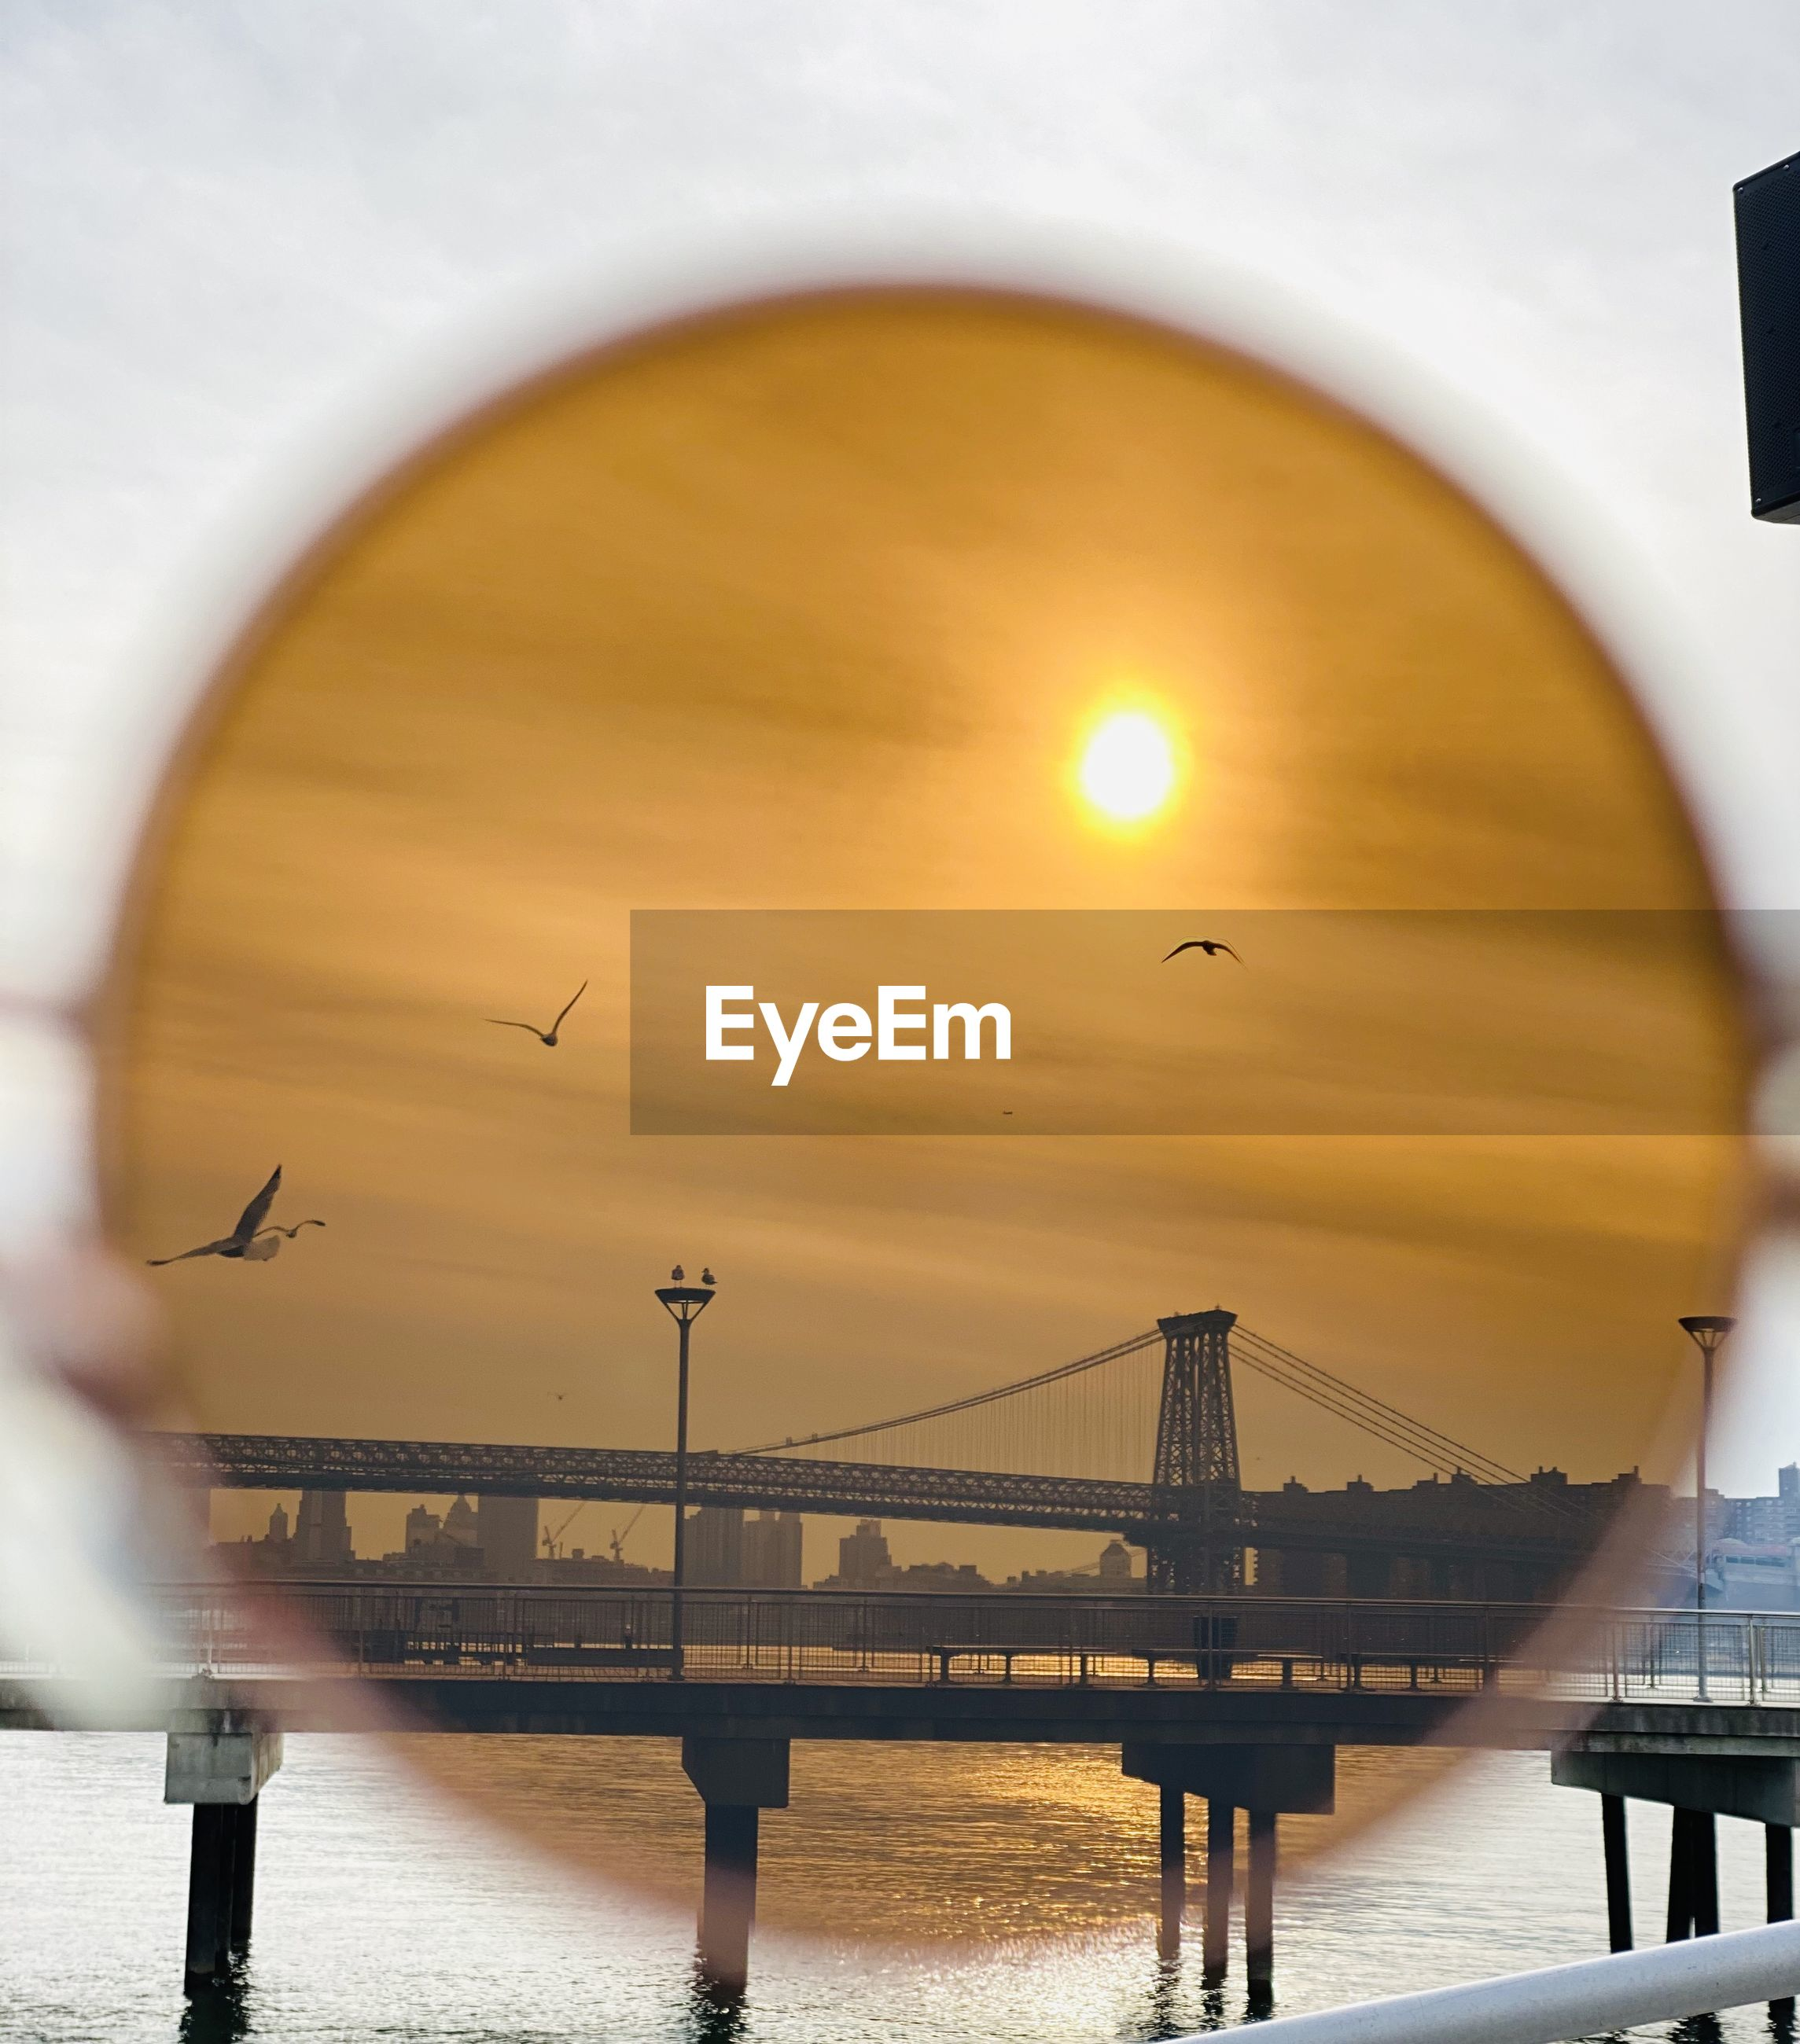 Birds flying over bridge and sea during sunset seen through sunglasses